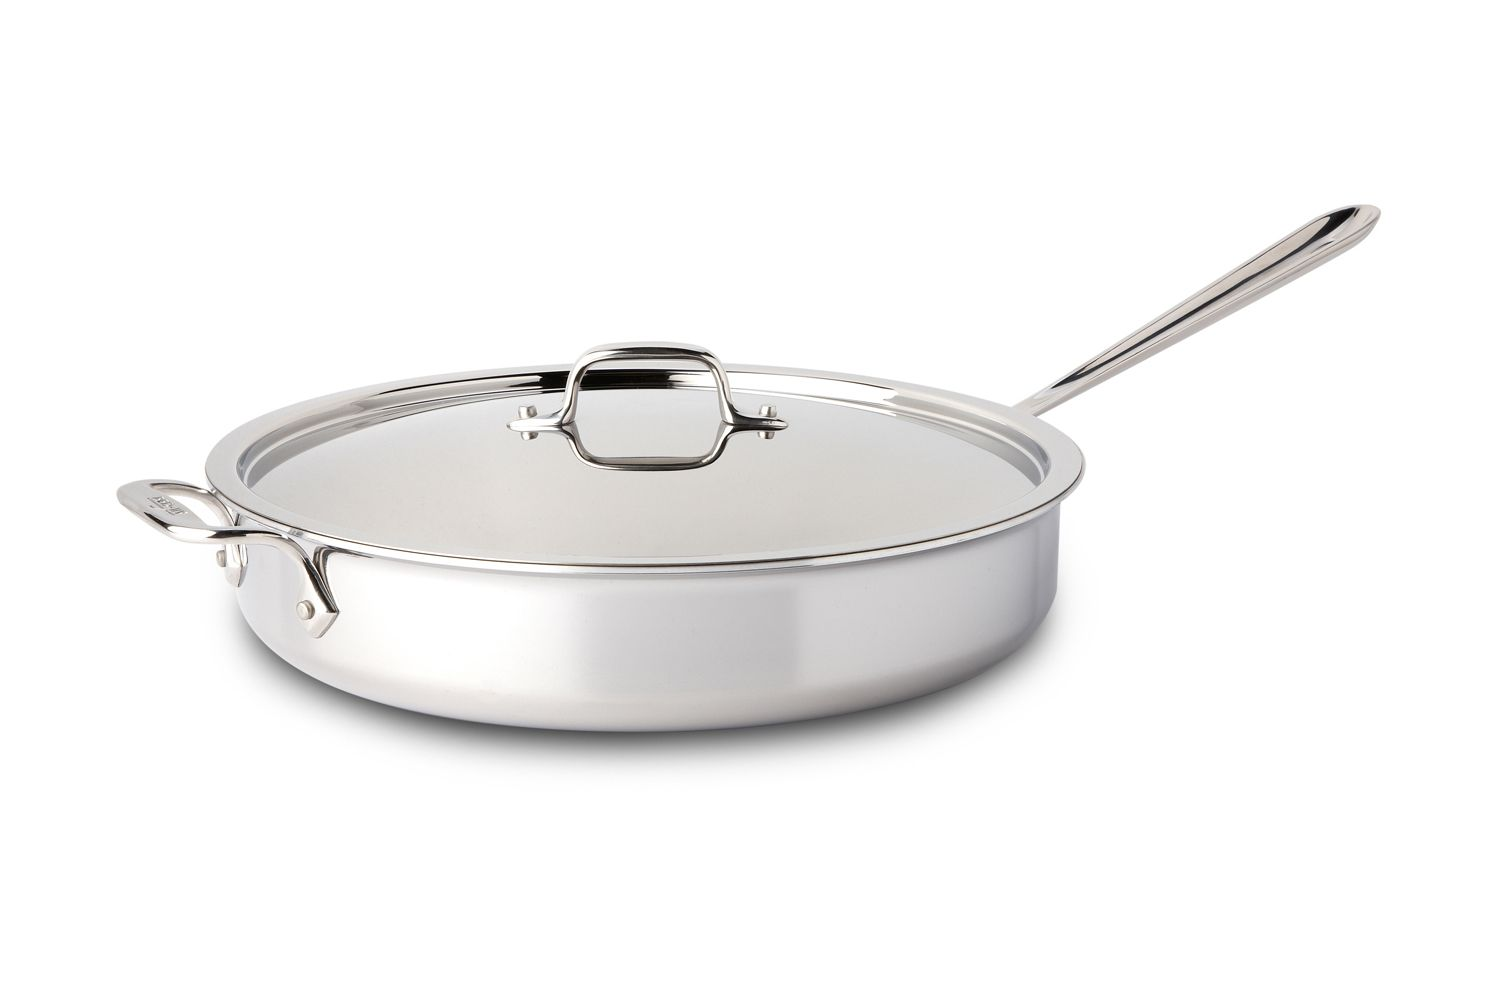 All Clad D3 Tri Ply Stainless Steel 6 Qt Saute Pan W Lid Saute Pan Stainless Pan All clad 6 quart saute pan